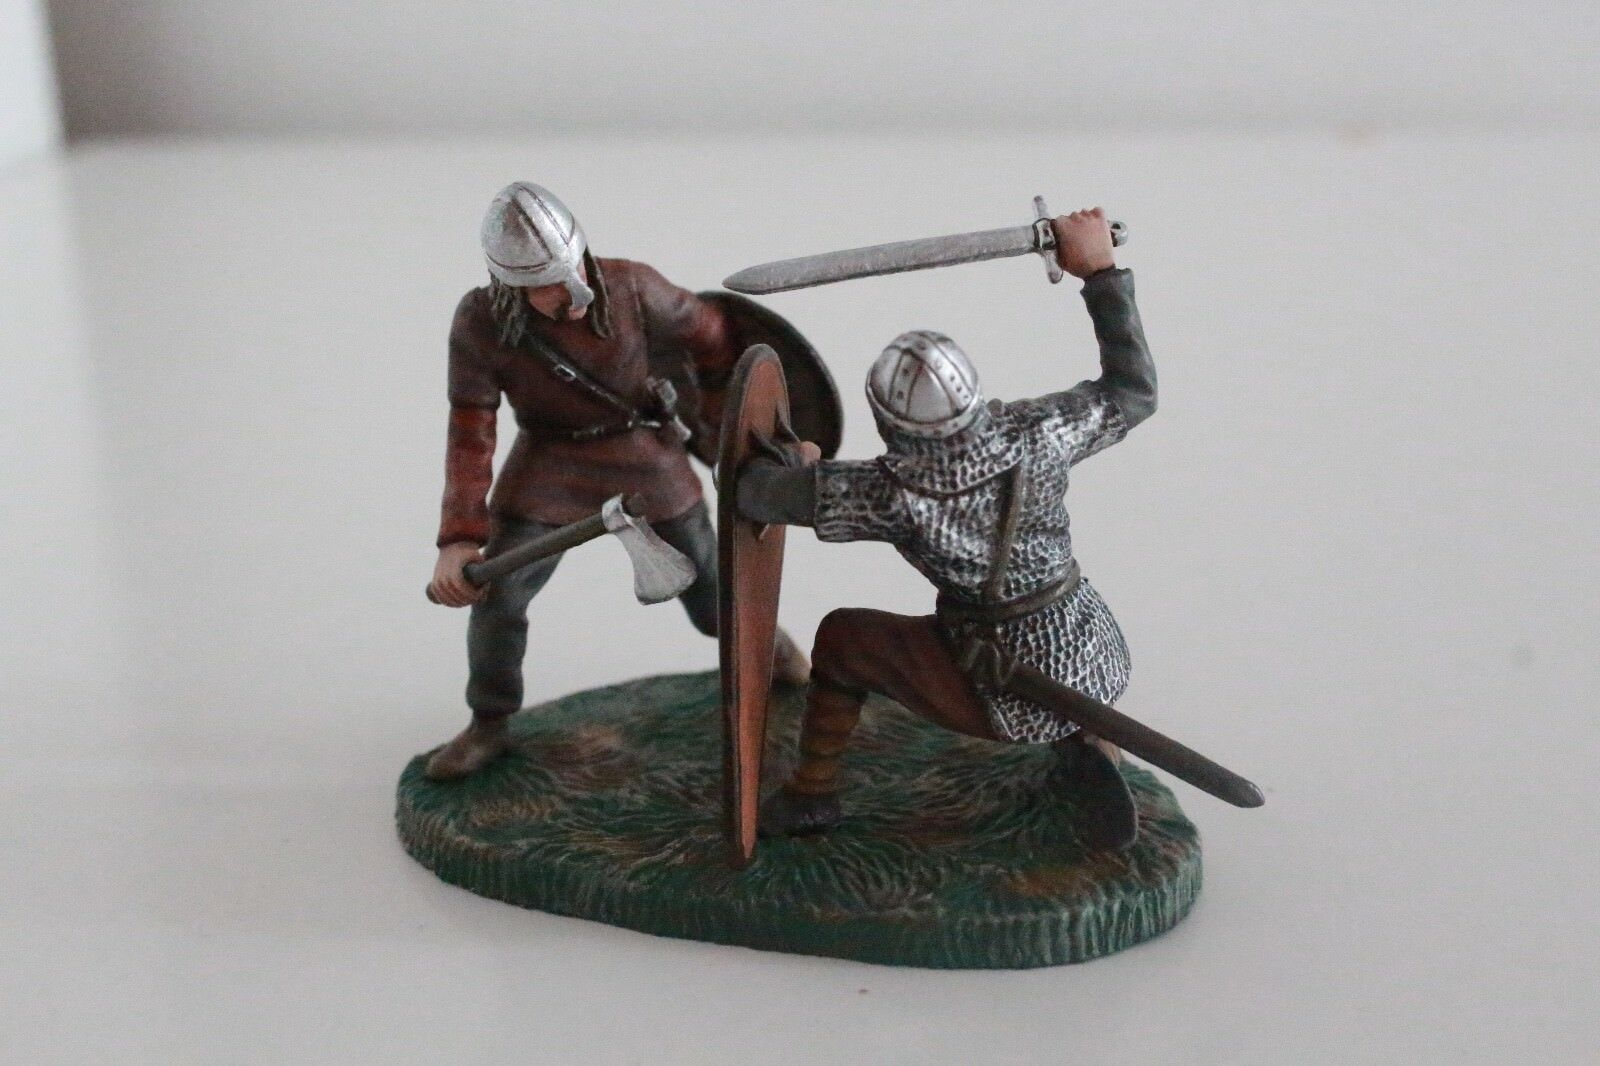 54mm figure Saxon Norman 1066 - Saxon & Norman Fighting. Painted